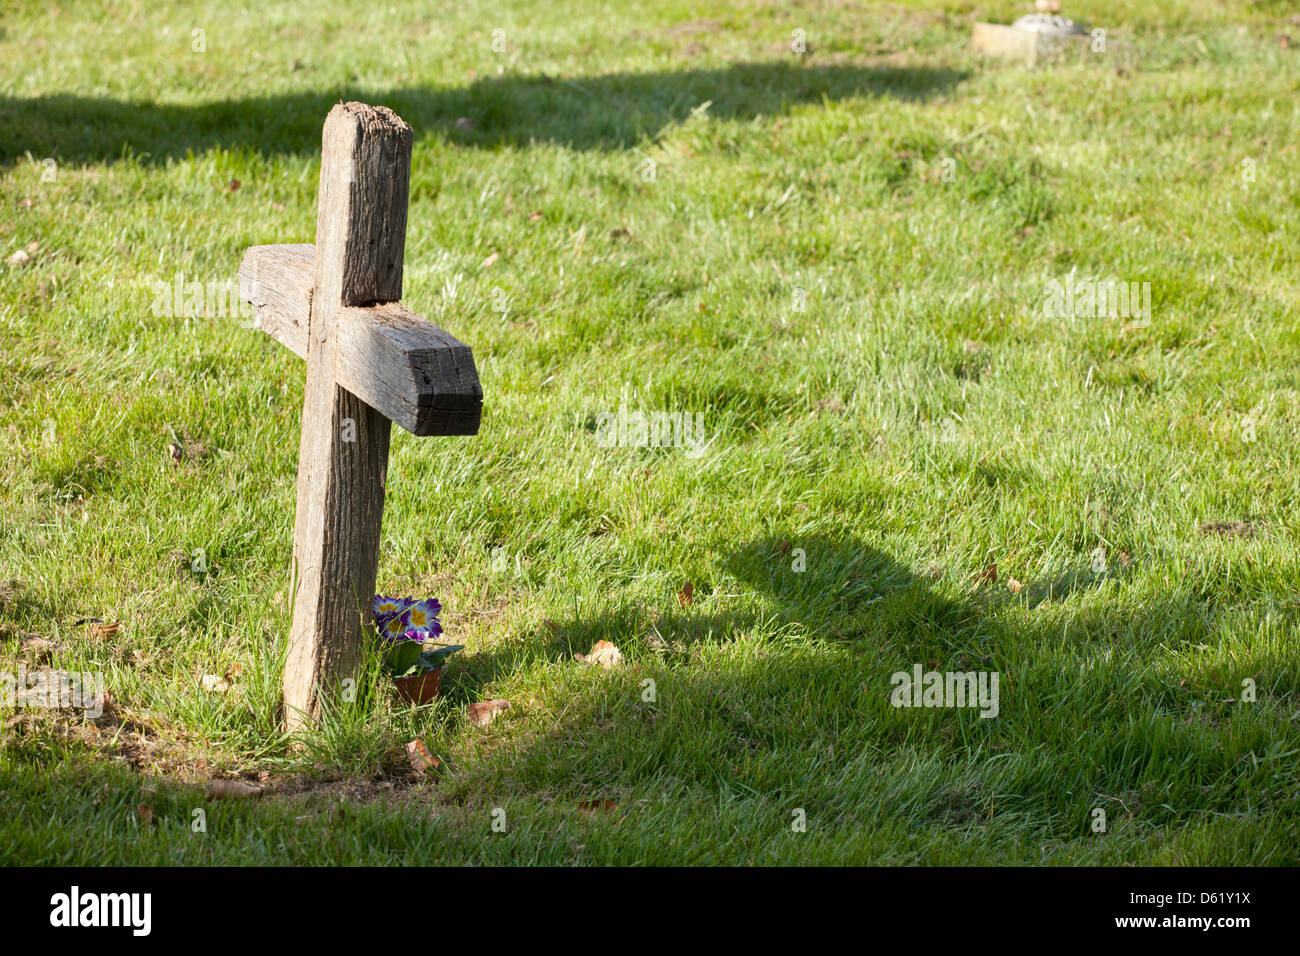 Wooden Cross In Graveyard Stock Photos Wooden Cross In Graveyard